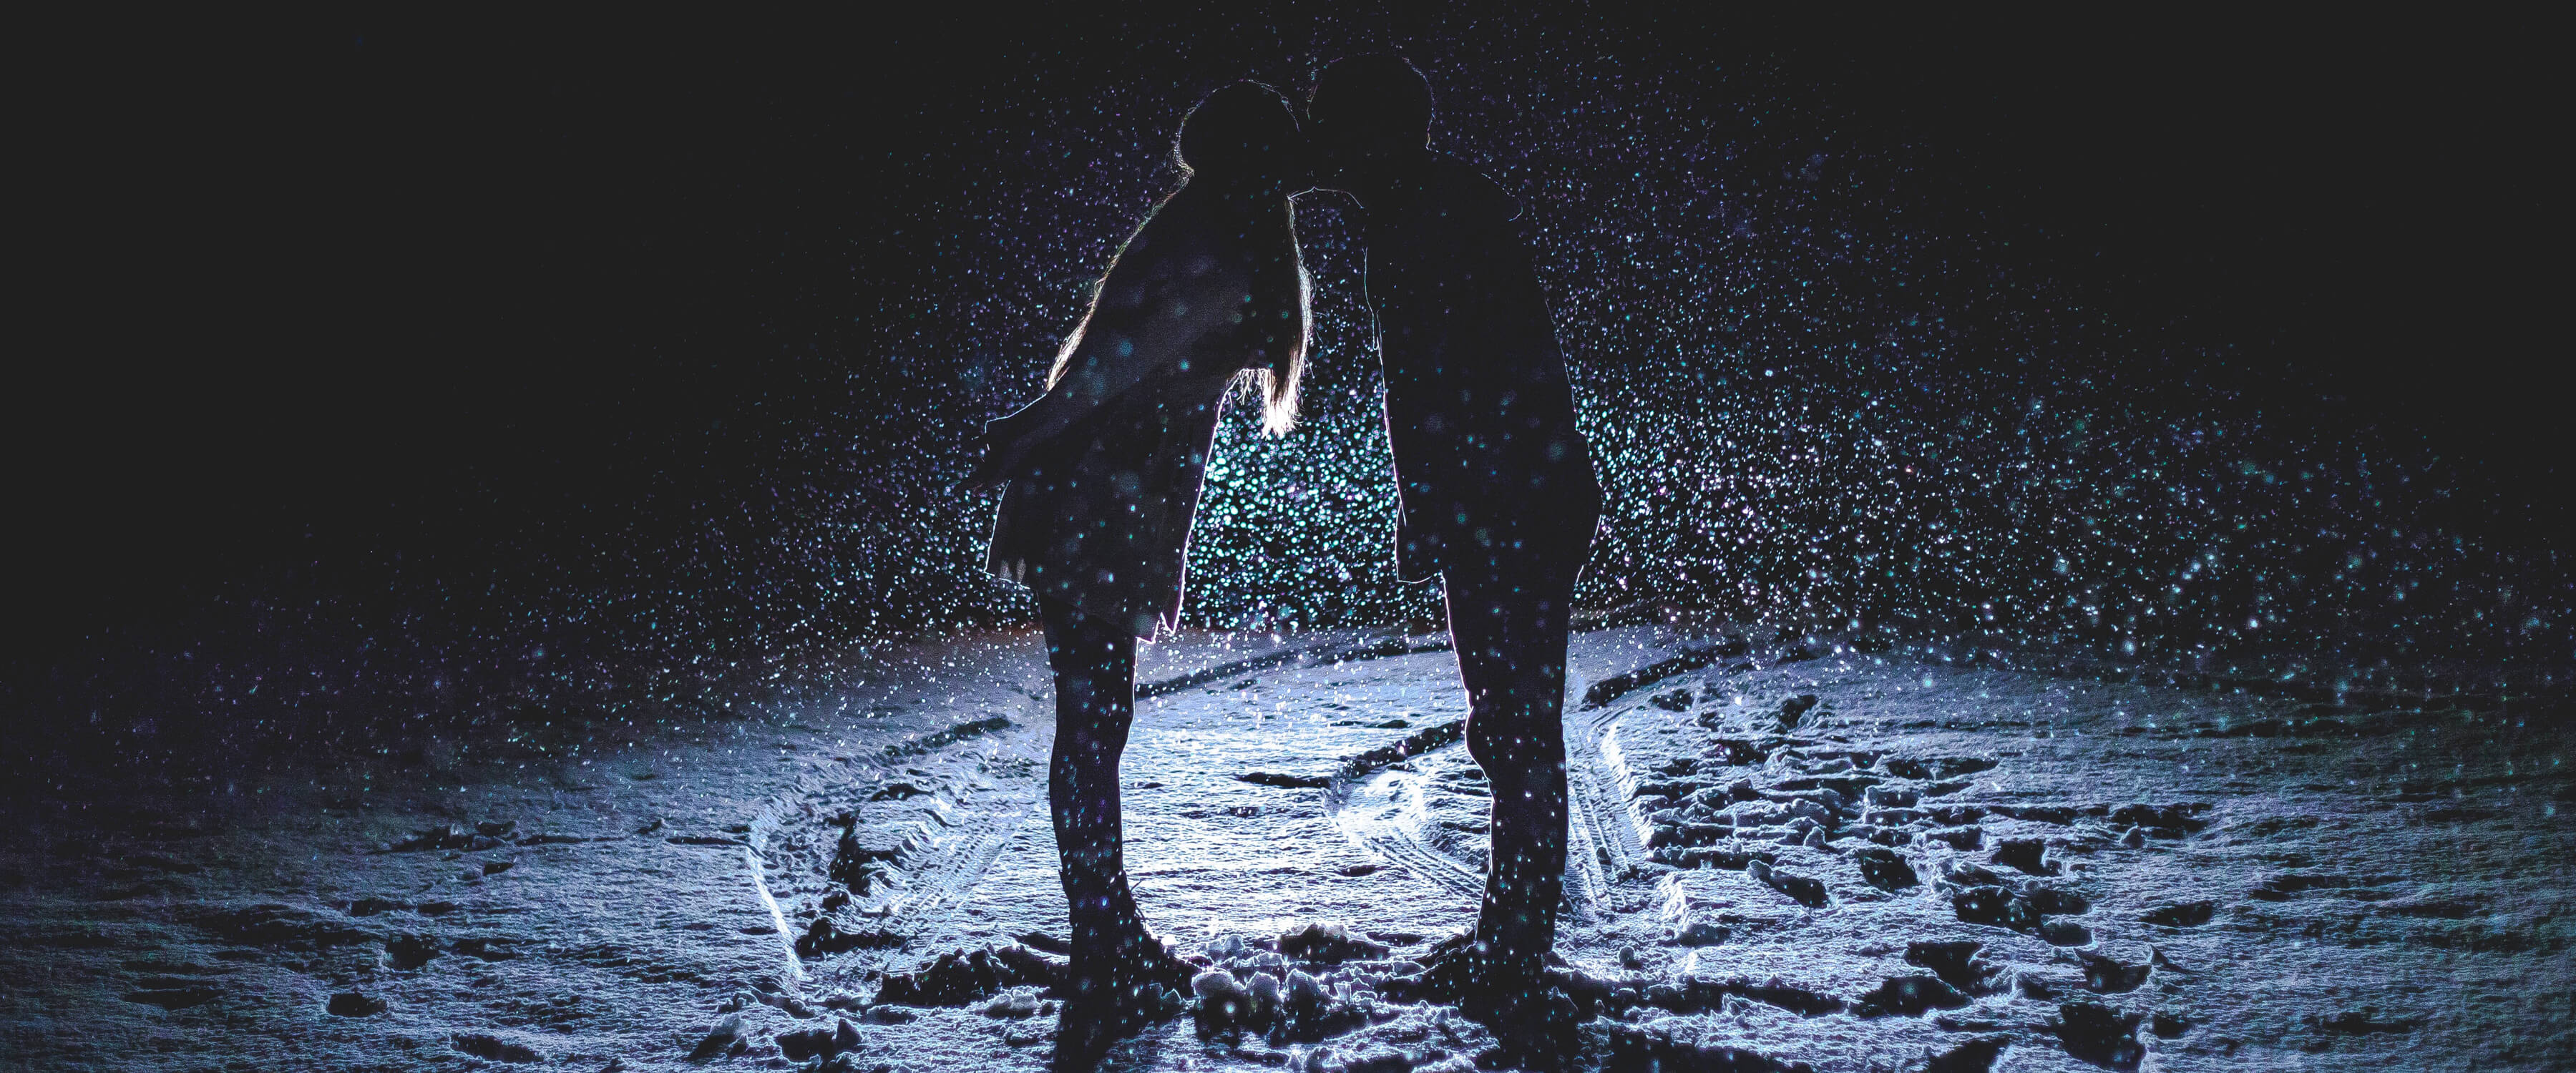 How to Get Over a Break-Up - 5 Things You Can Do